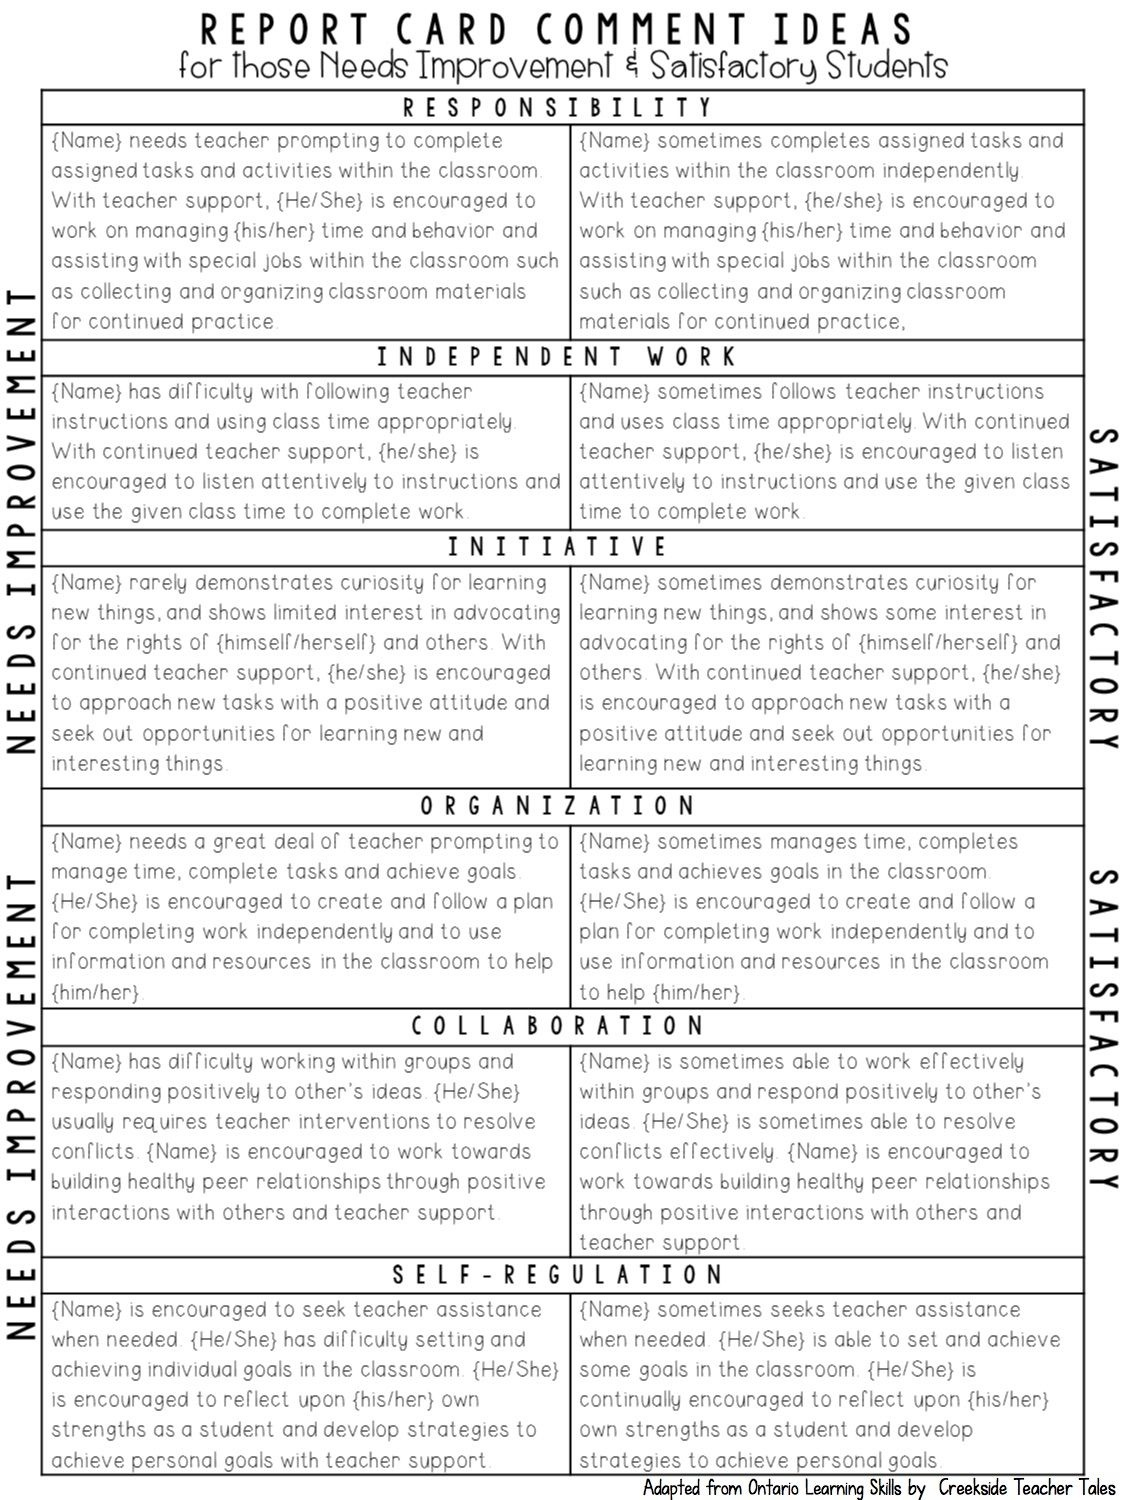 Tips For Not Letting Report Cards Get You Down   Assessment   Report - Free Printable Report Card Comments